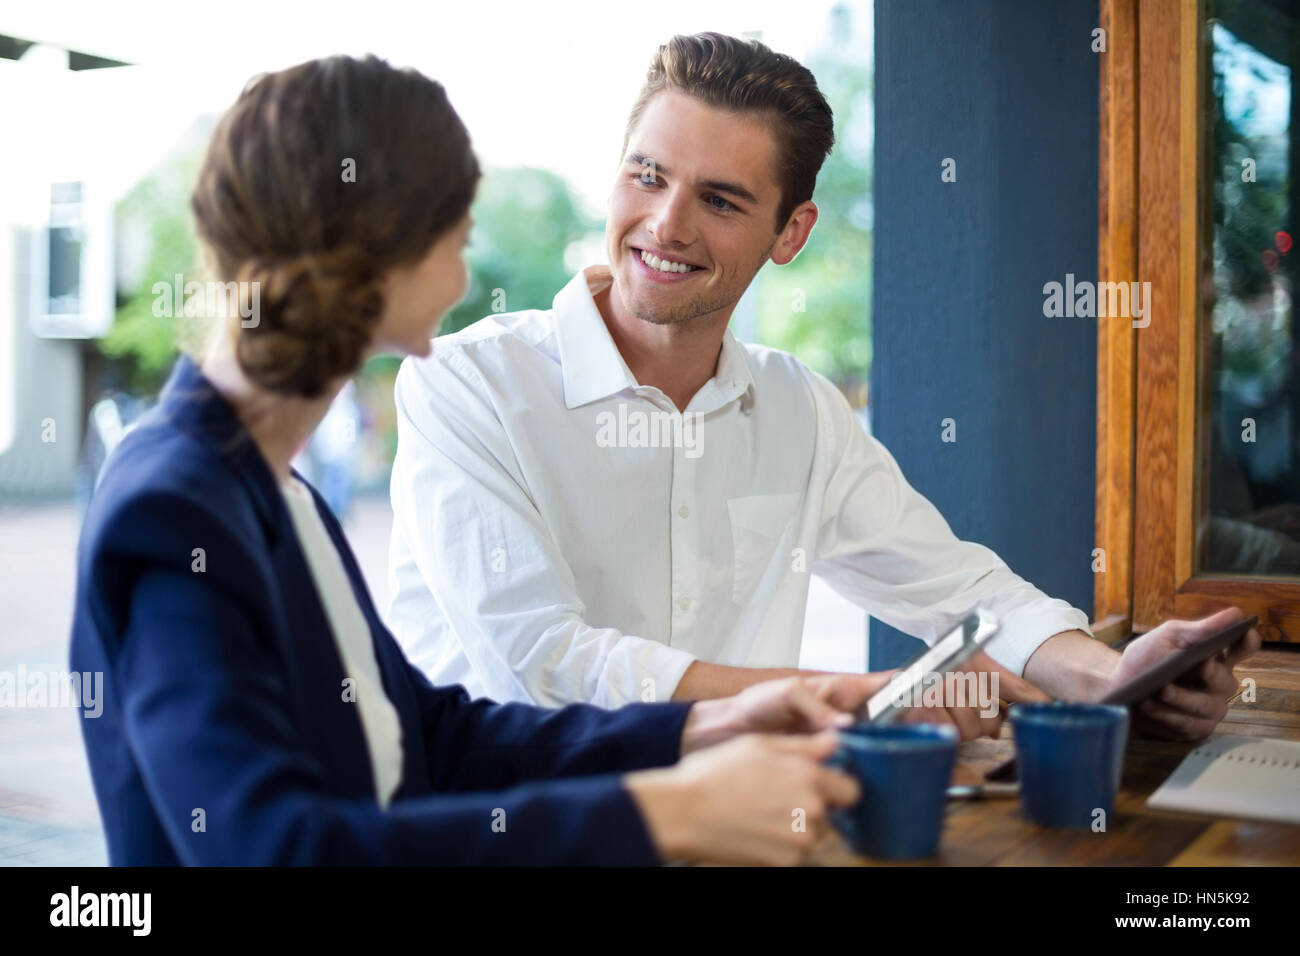 Businessman and woman interacting while having coffee at counter in café Stock Photo